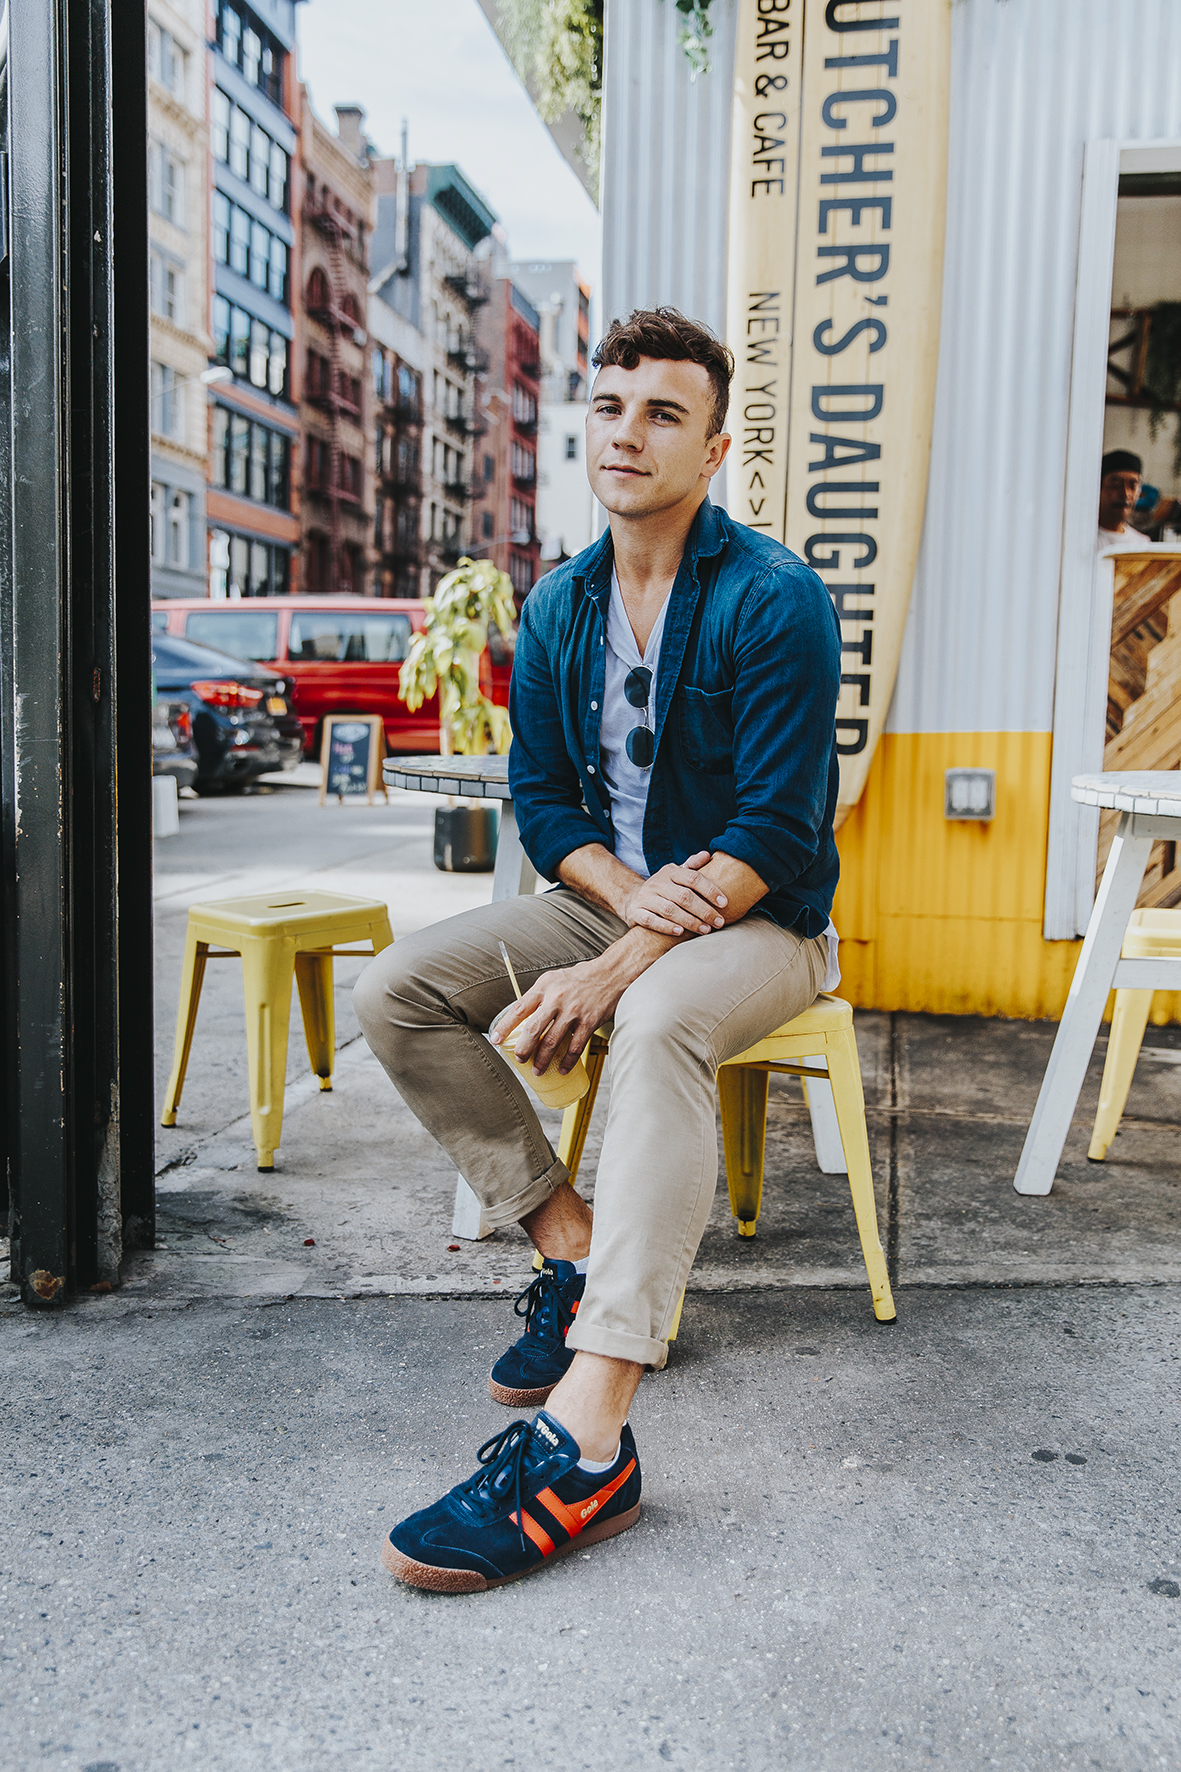 Men's Fashion and Lifestyle Blogger Justin Livingston wears Gola Classic Men's Harrier C83 Sneaker in New York City